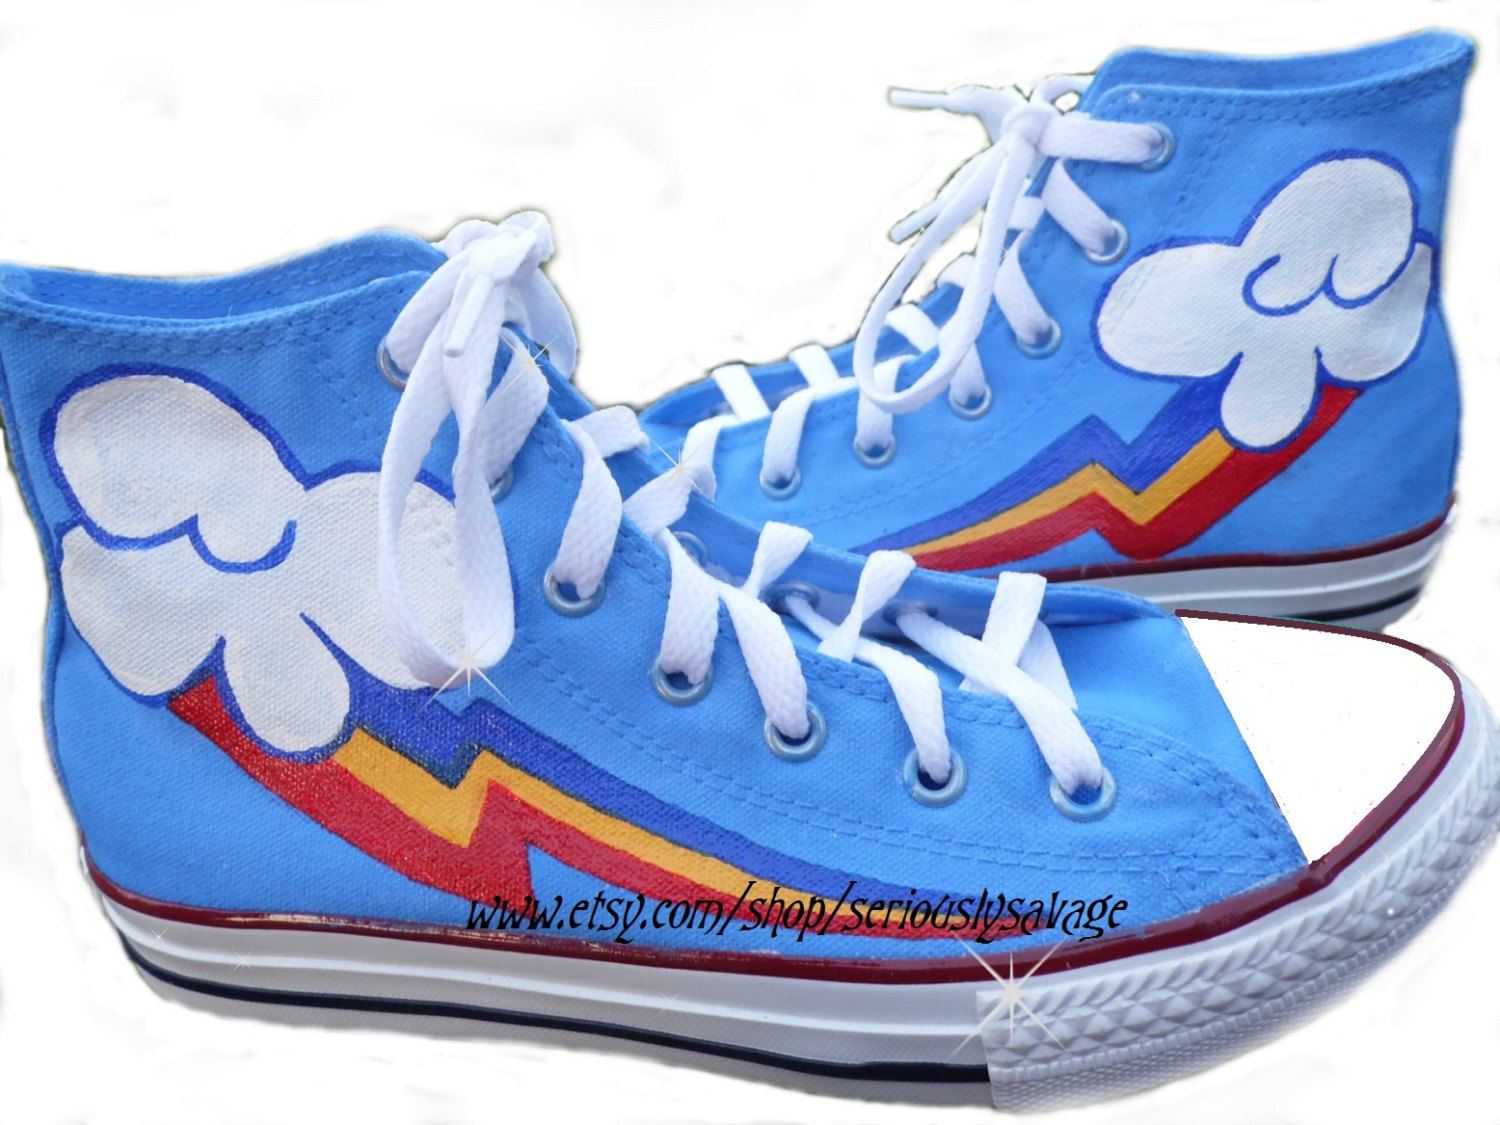 Drawn shoe mlp Children Painted ANY Custom Painted